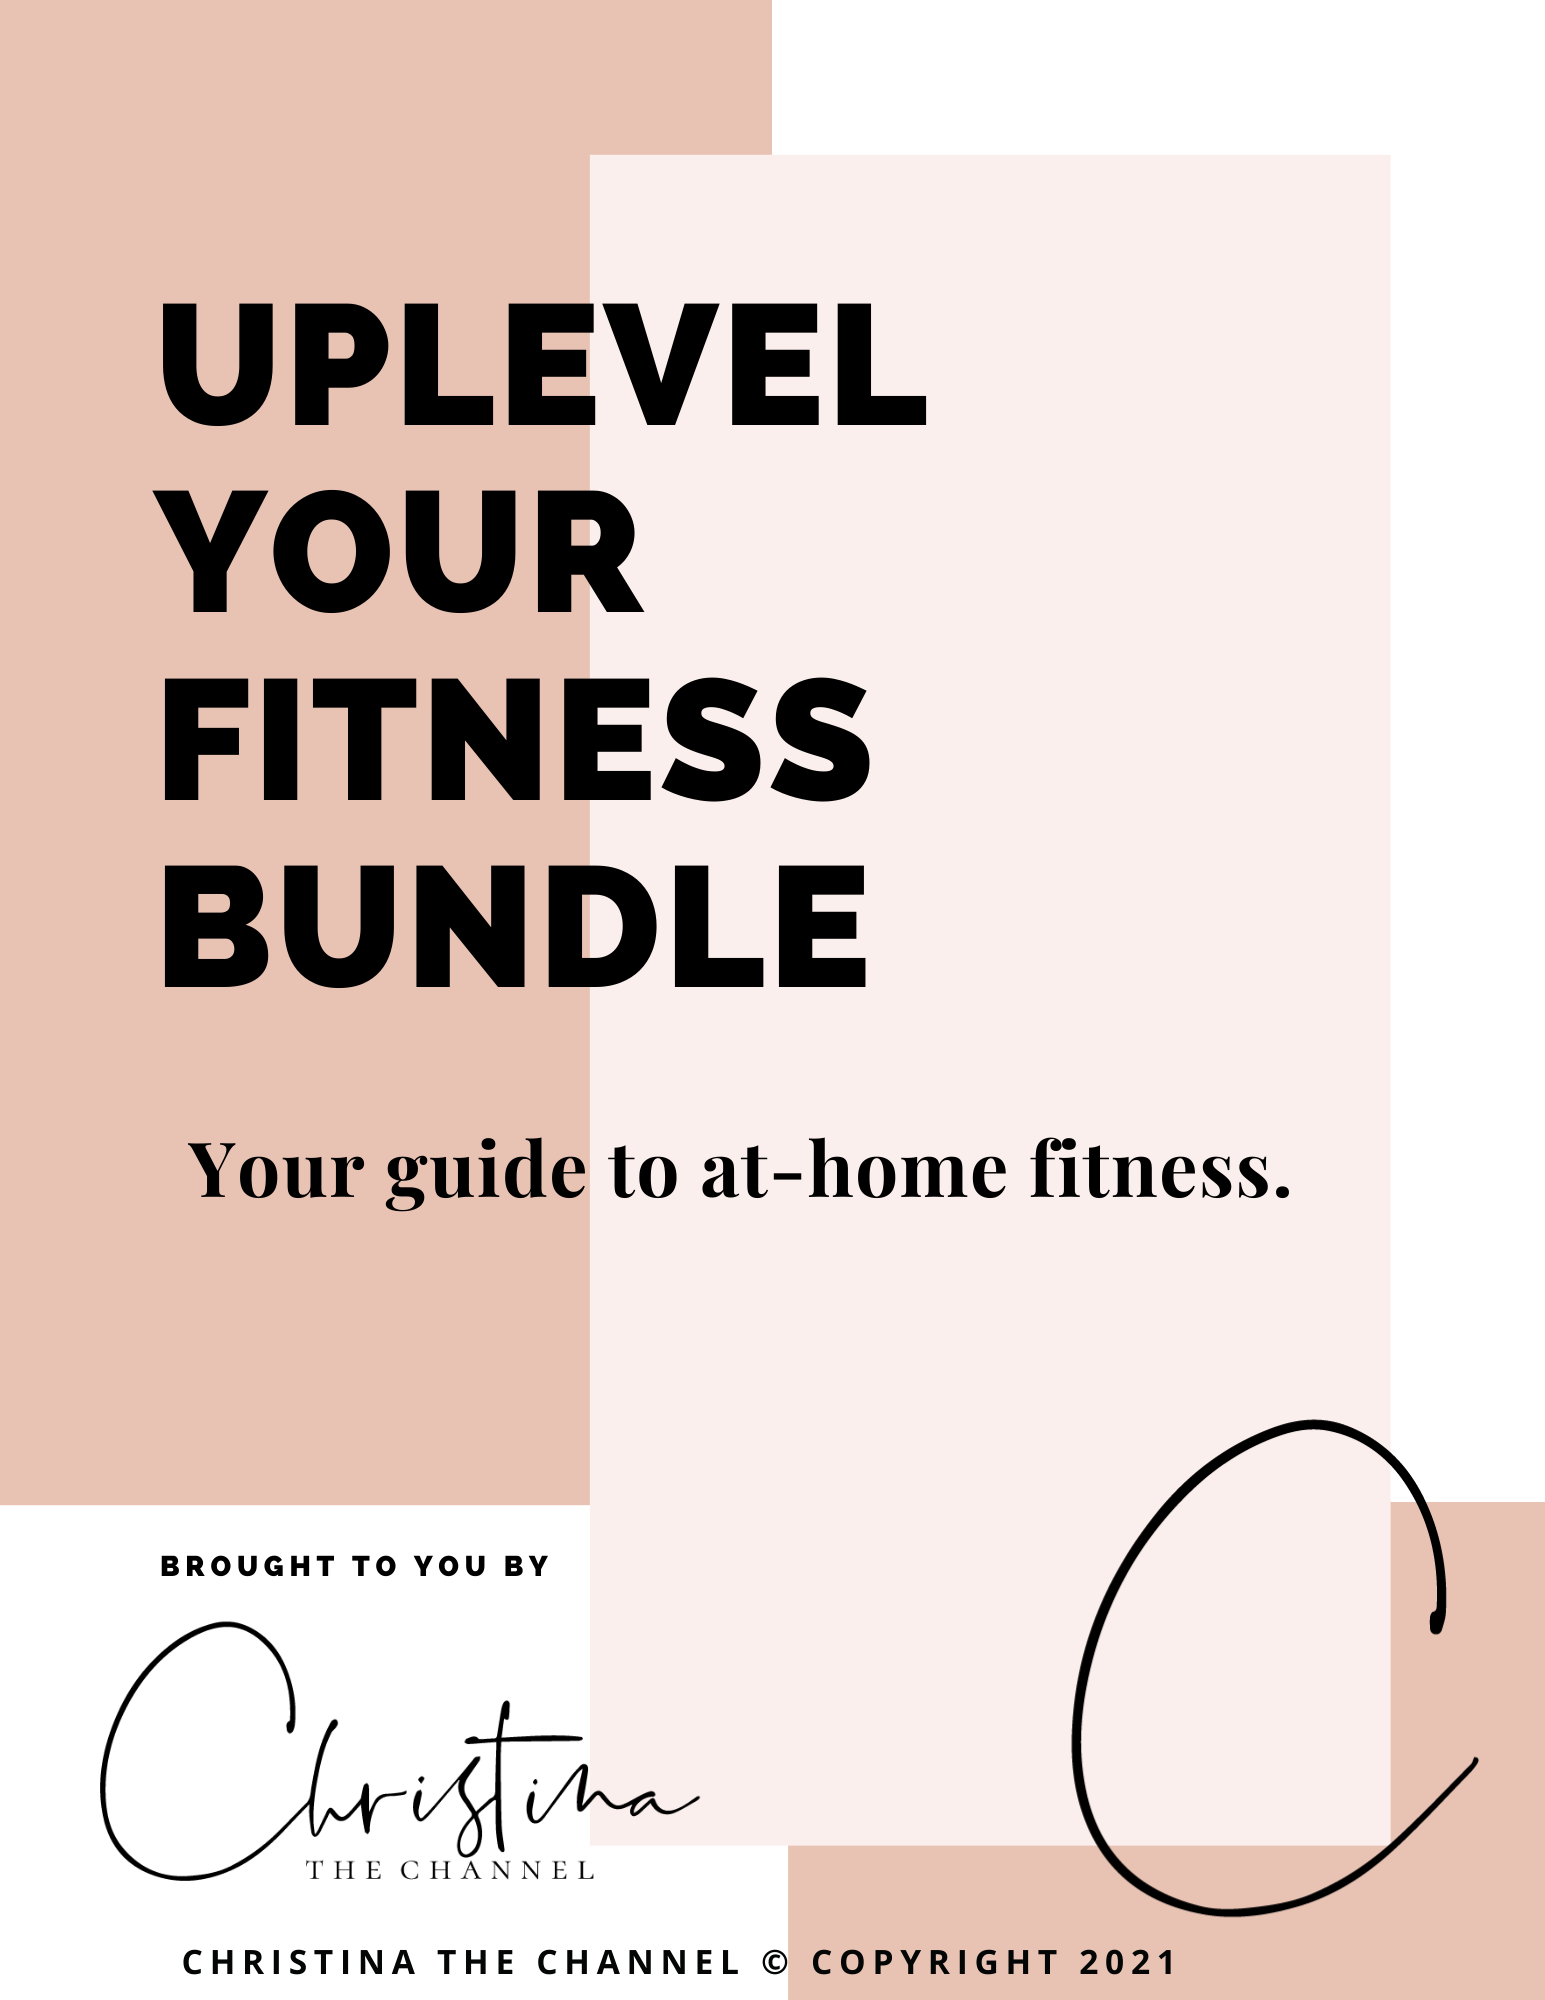 UPLEVEL Fitness workout guide